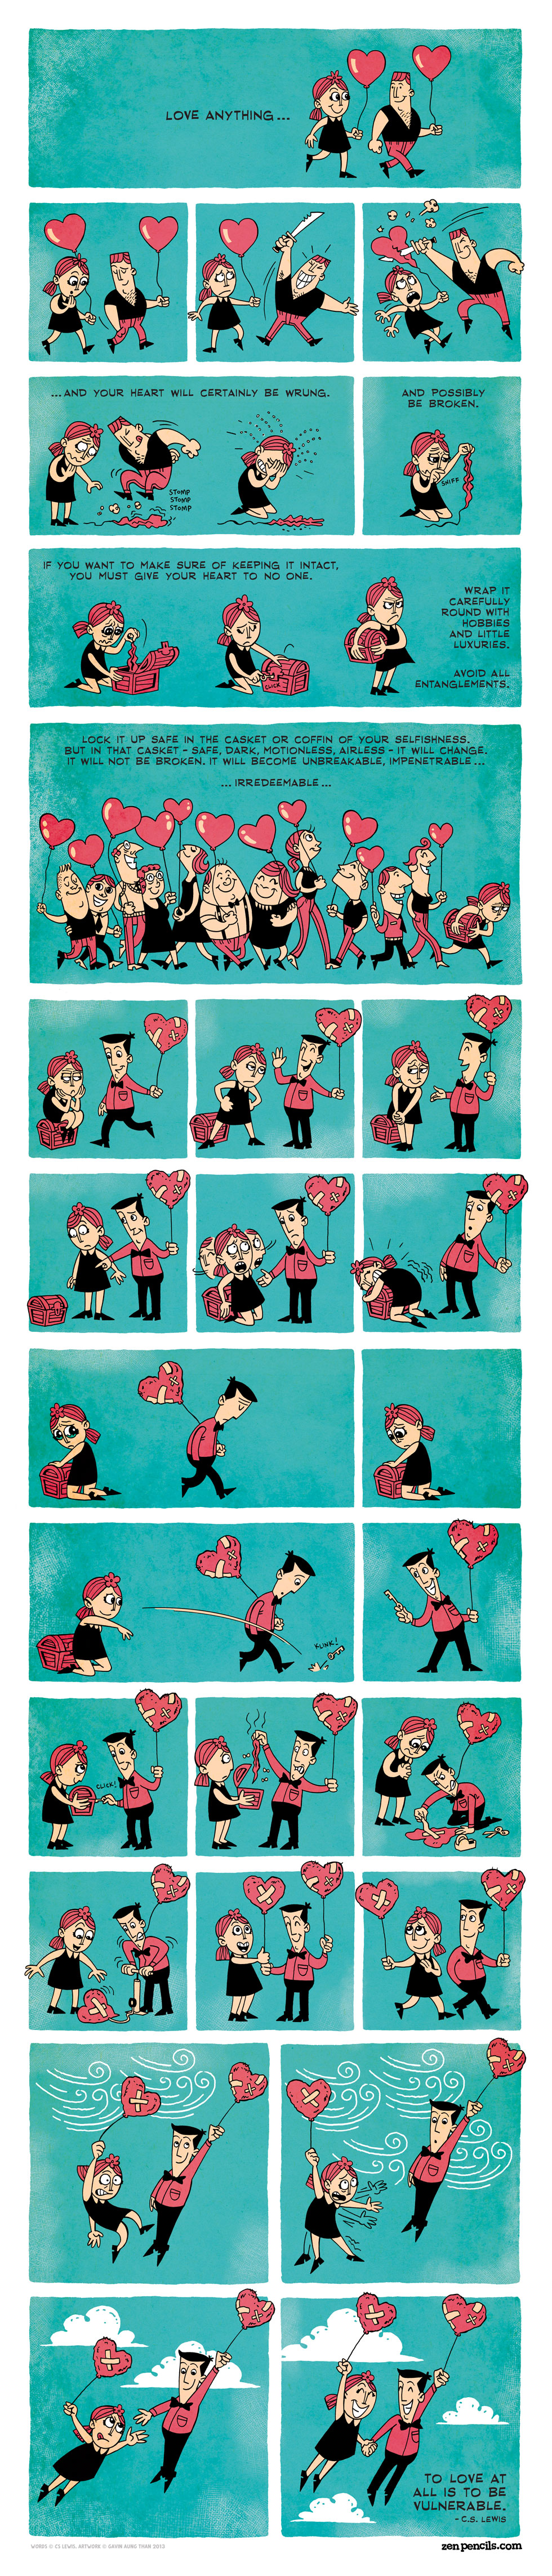 http://zenpencils.com/comic/103-c-s-lewis-to-love-at-all/